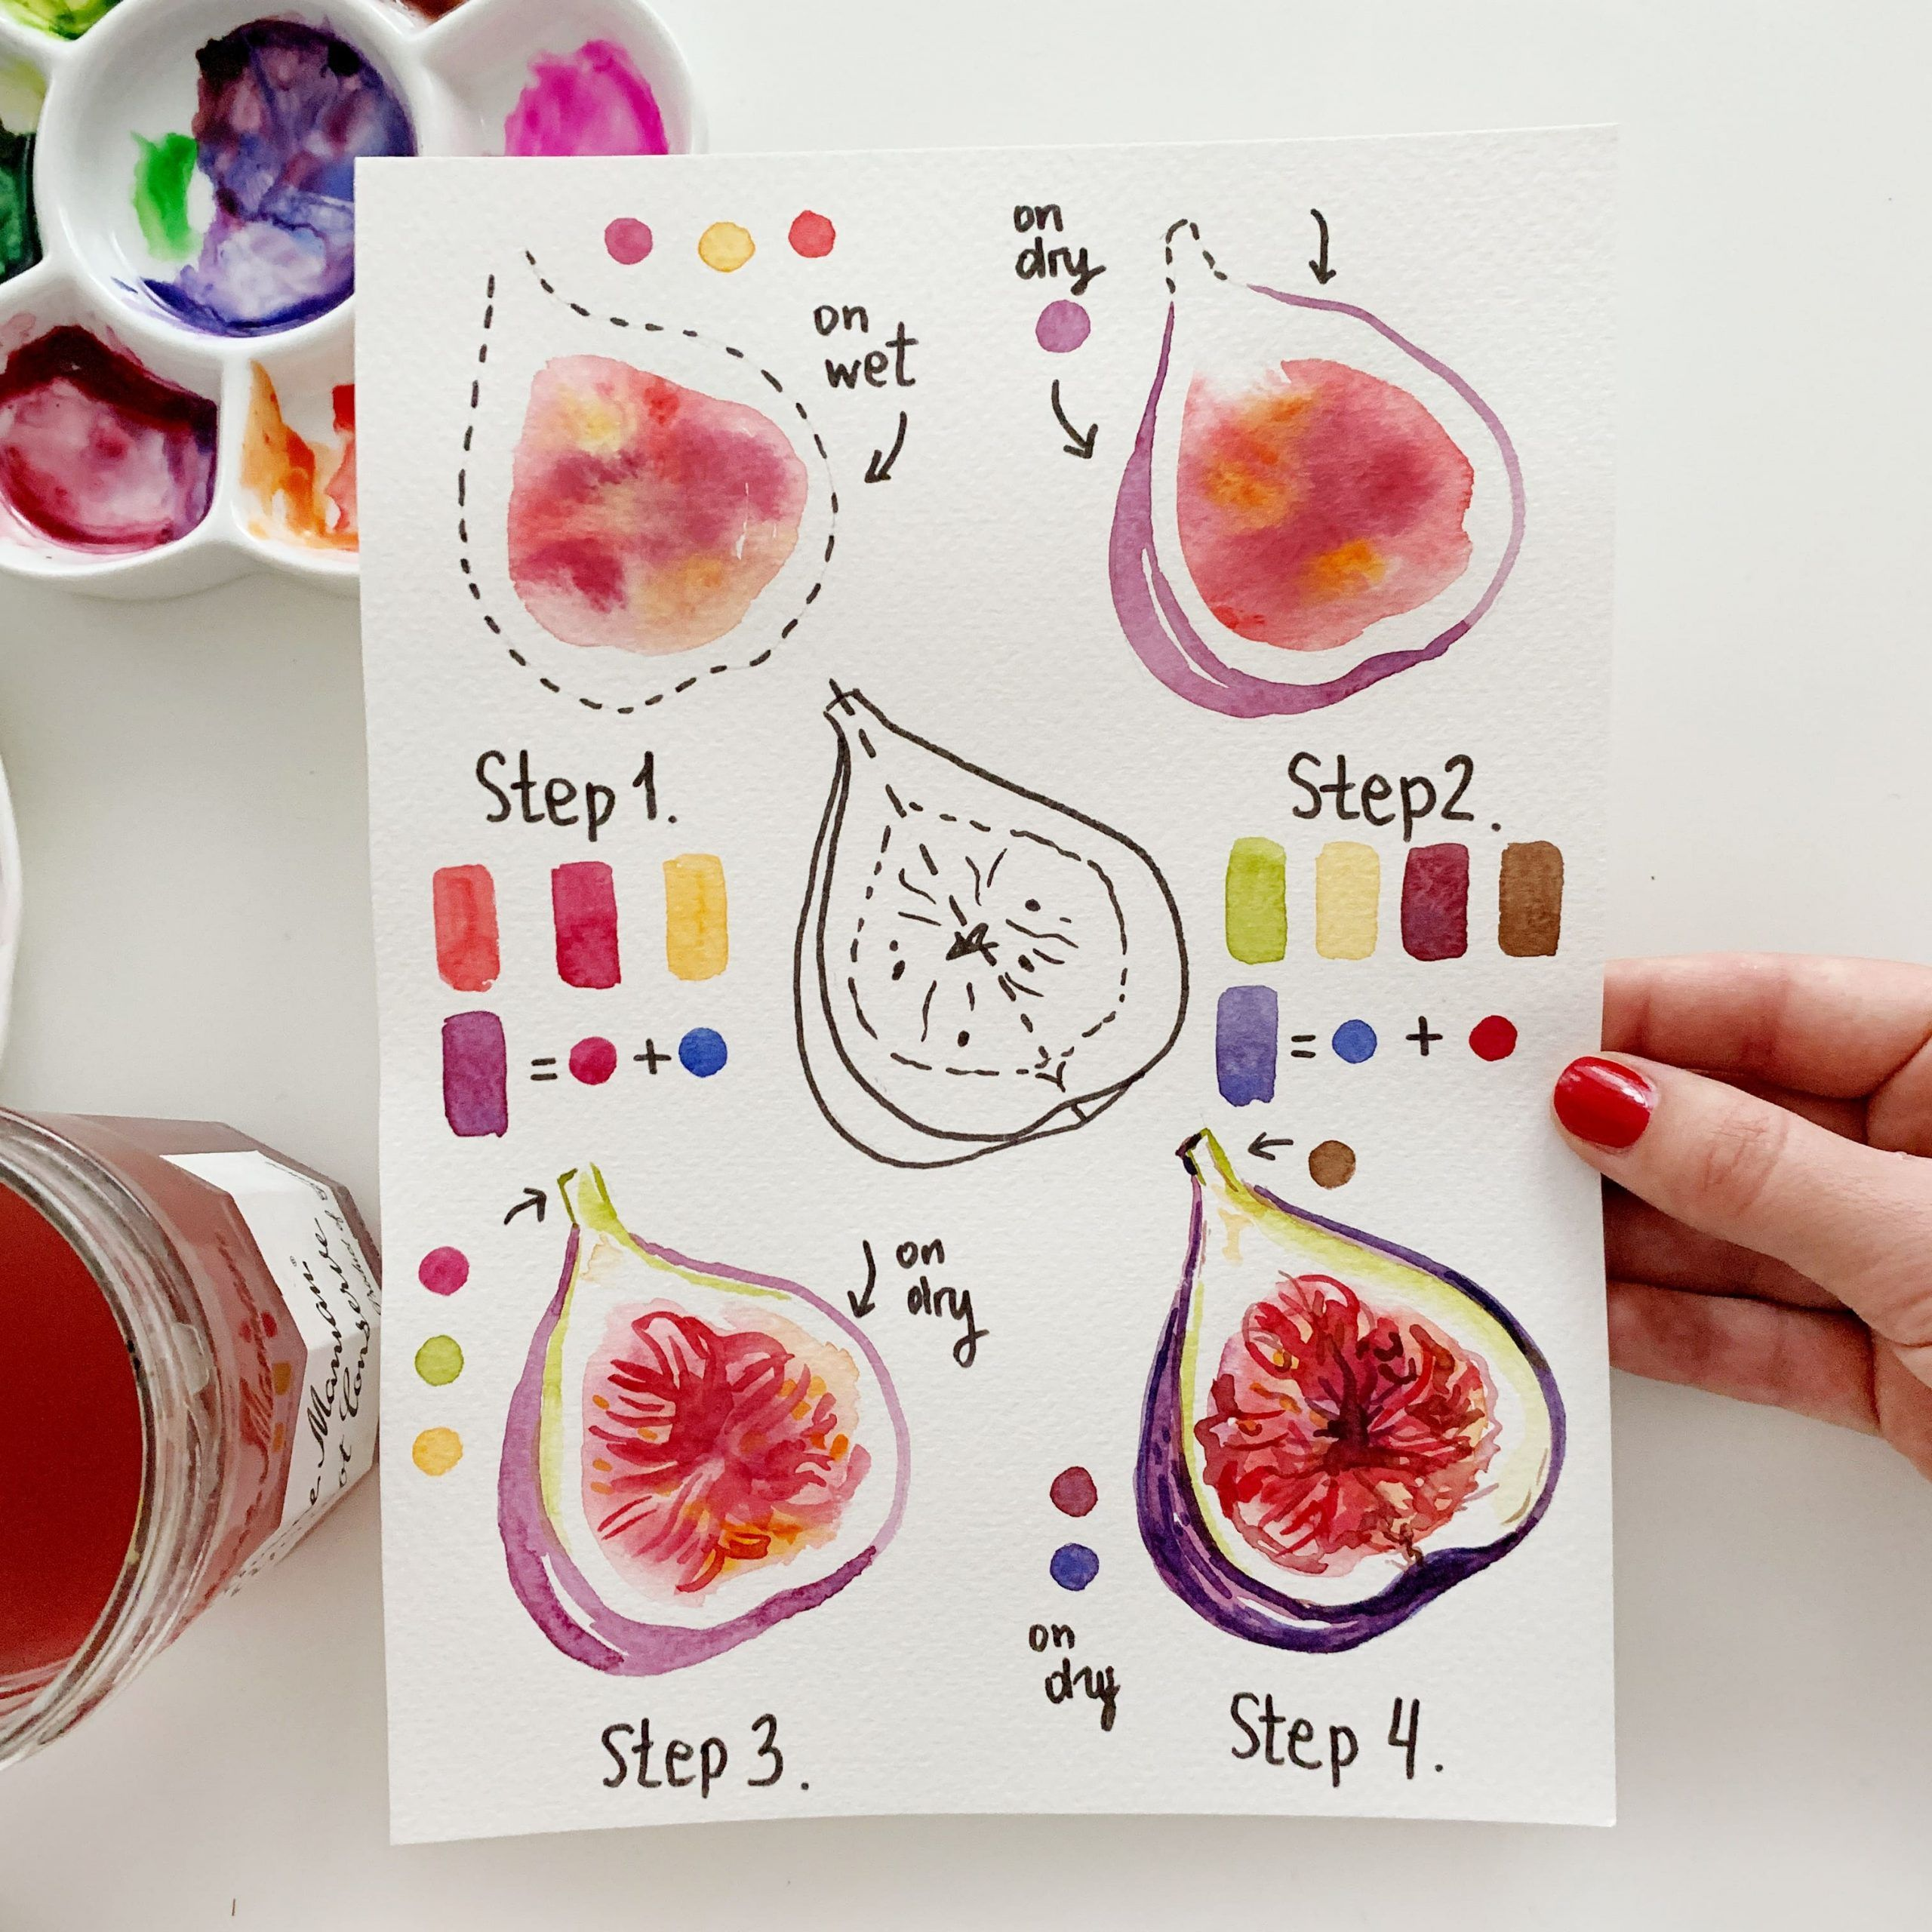 Colorful and yummy fig with watercolor (stepbystep